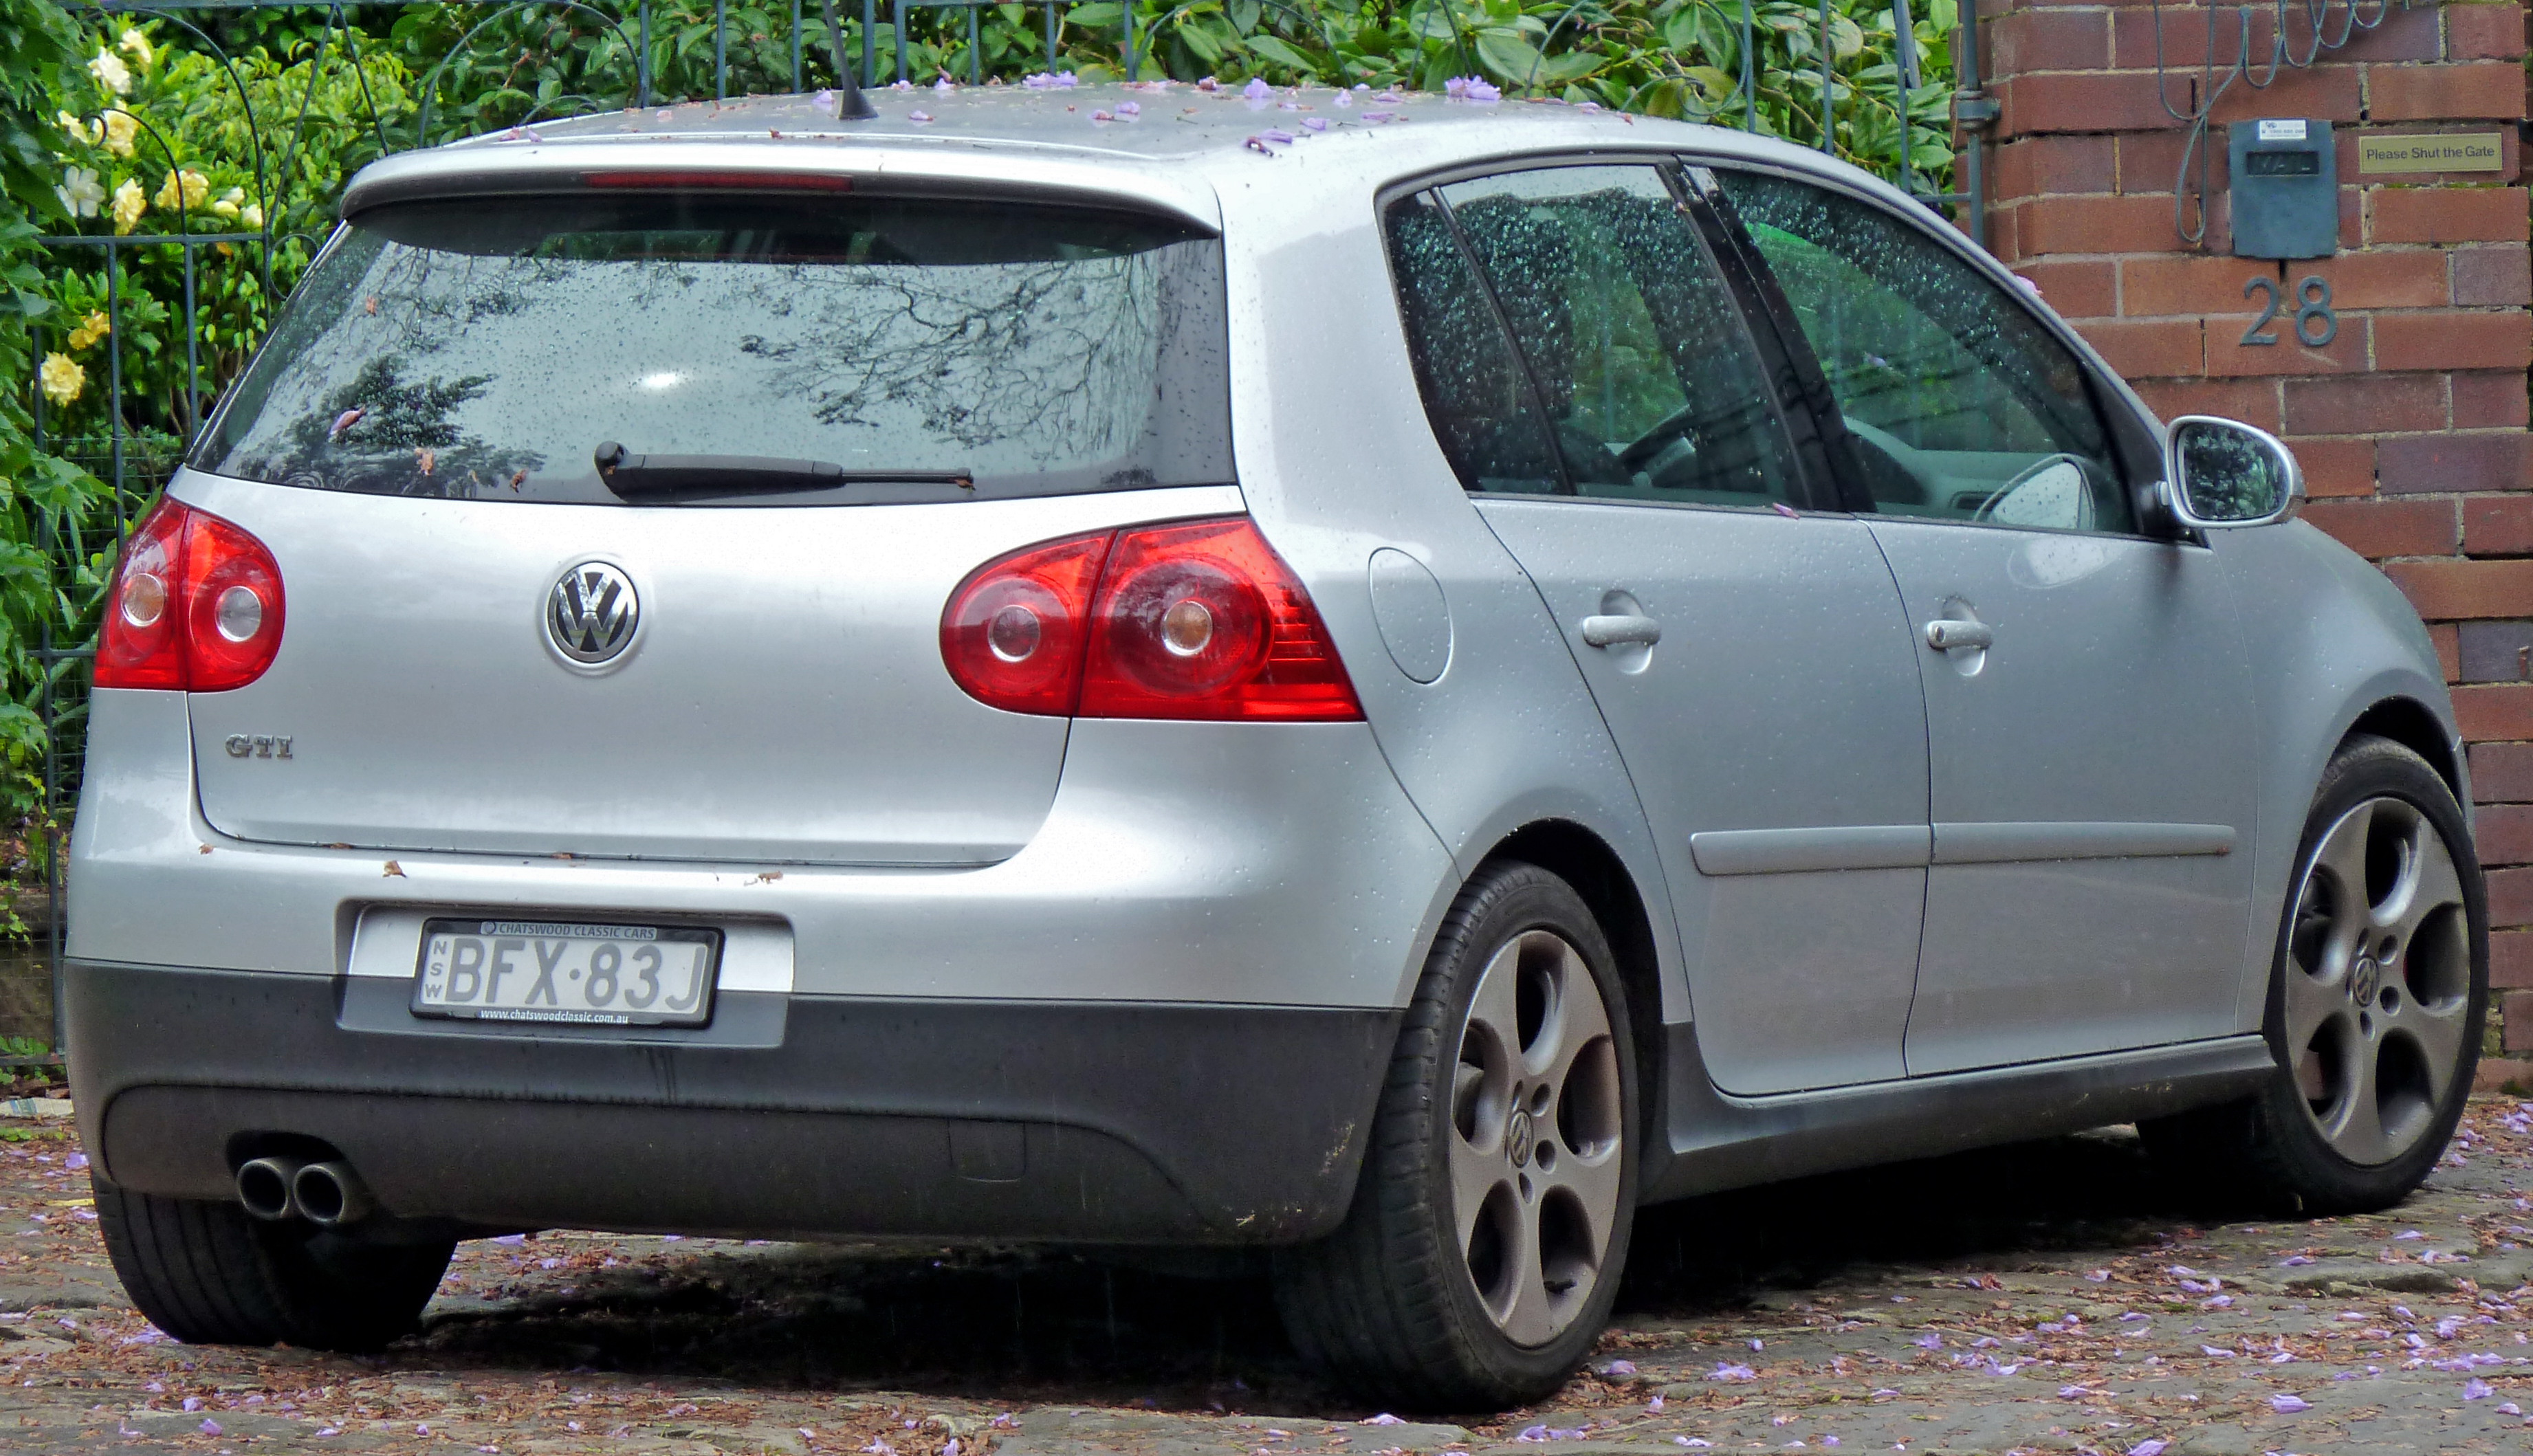 file 2008 volkswagen golf 1k my08 gti 5 door hatchback. Black Bedroom Furniture Sets. Home Design Ideas